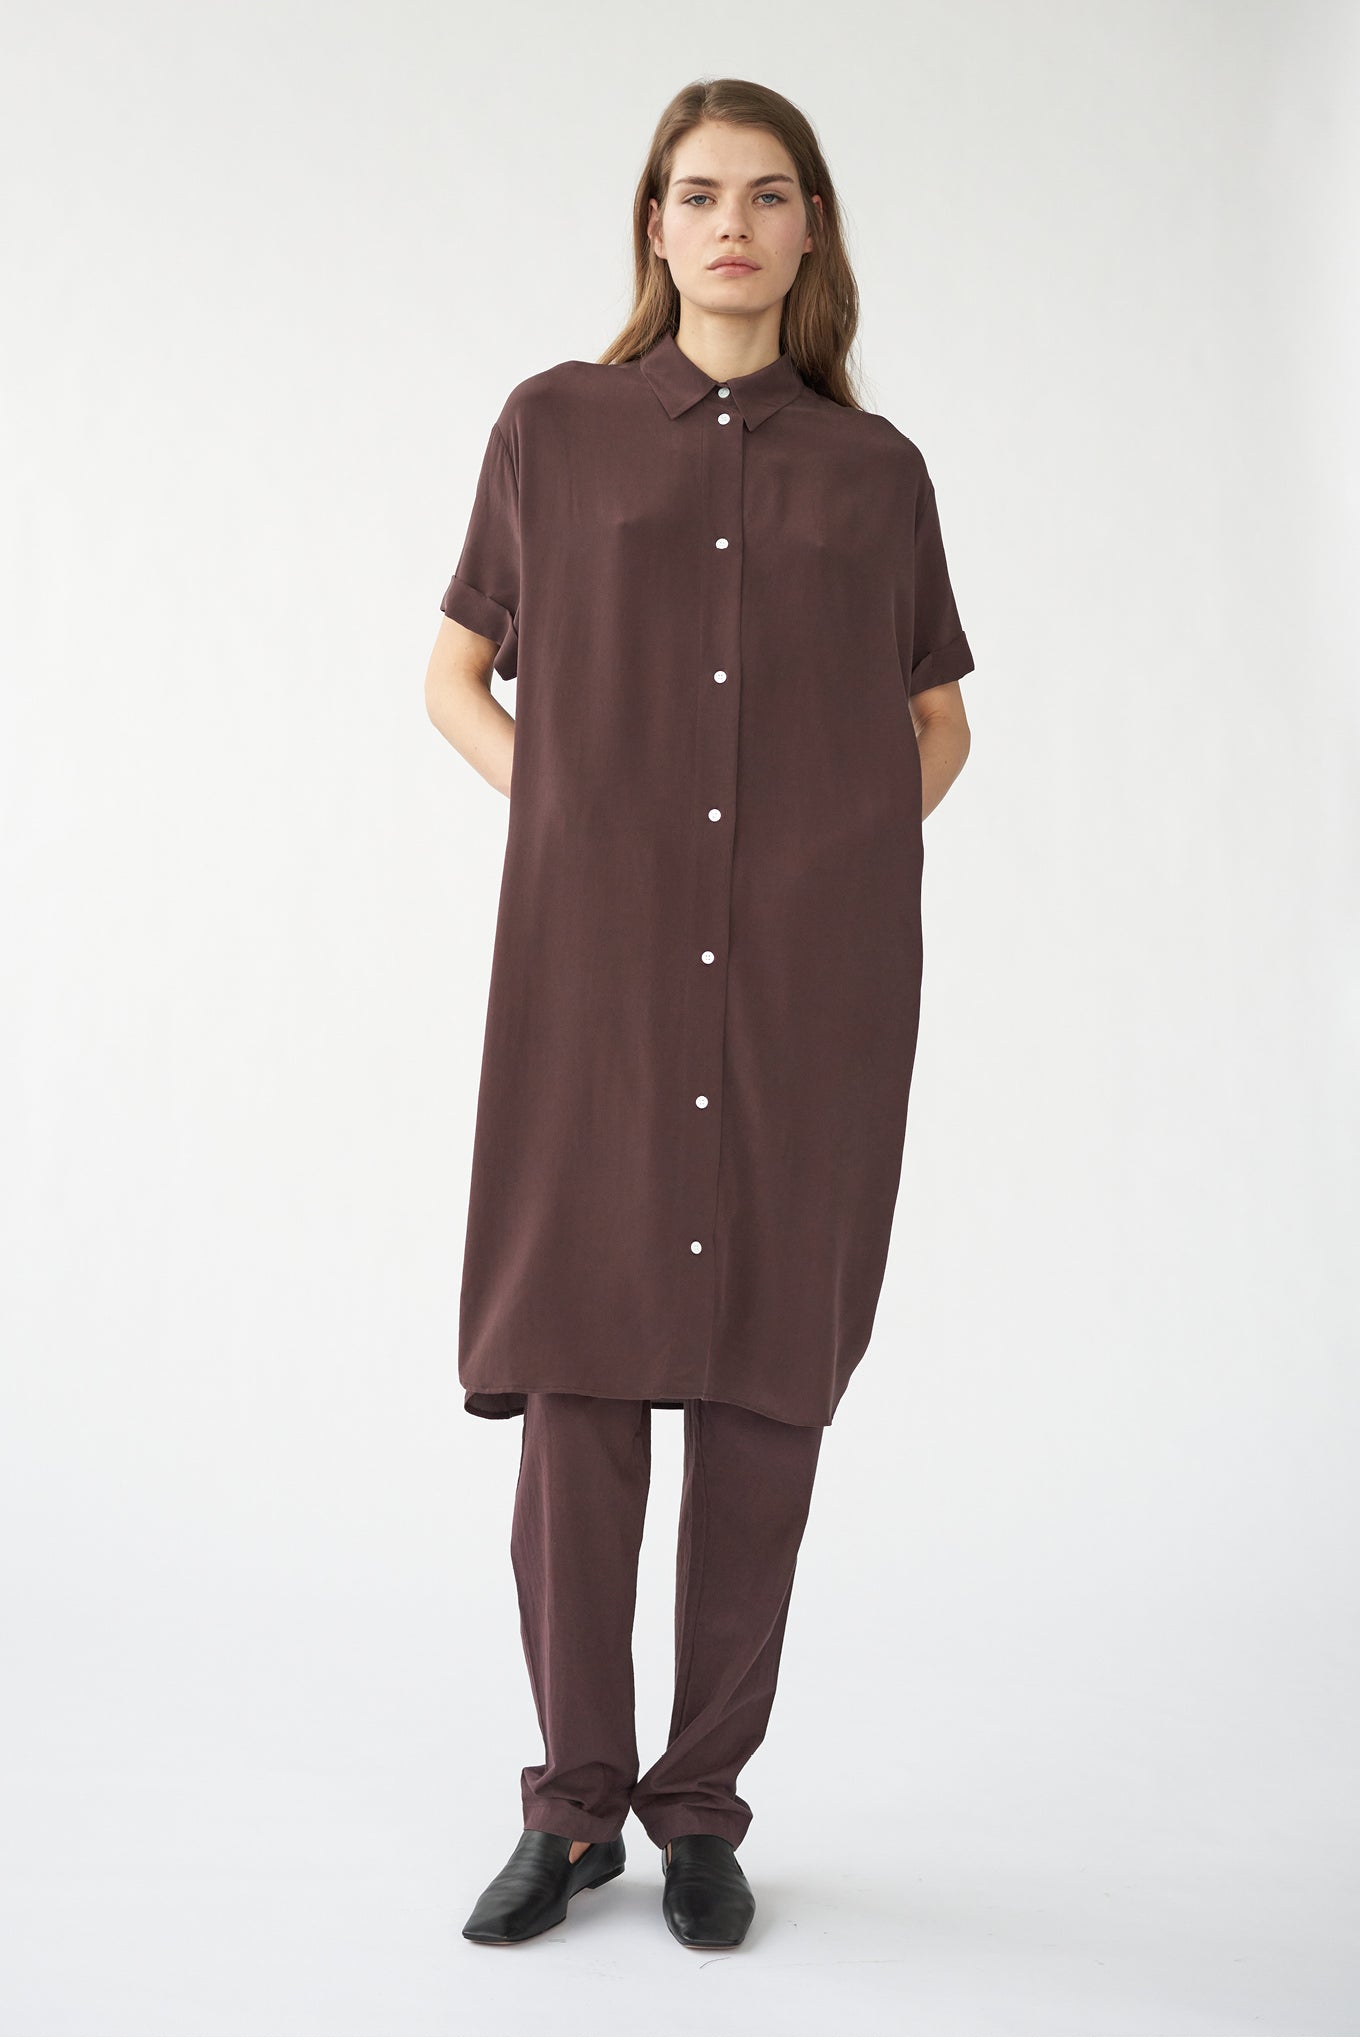 ELIZA SHIRT DRESS - BITTER CHOCOLATE - SAND WASHED CREPE DE CHINE SILK